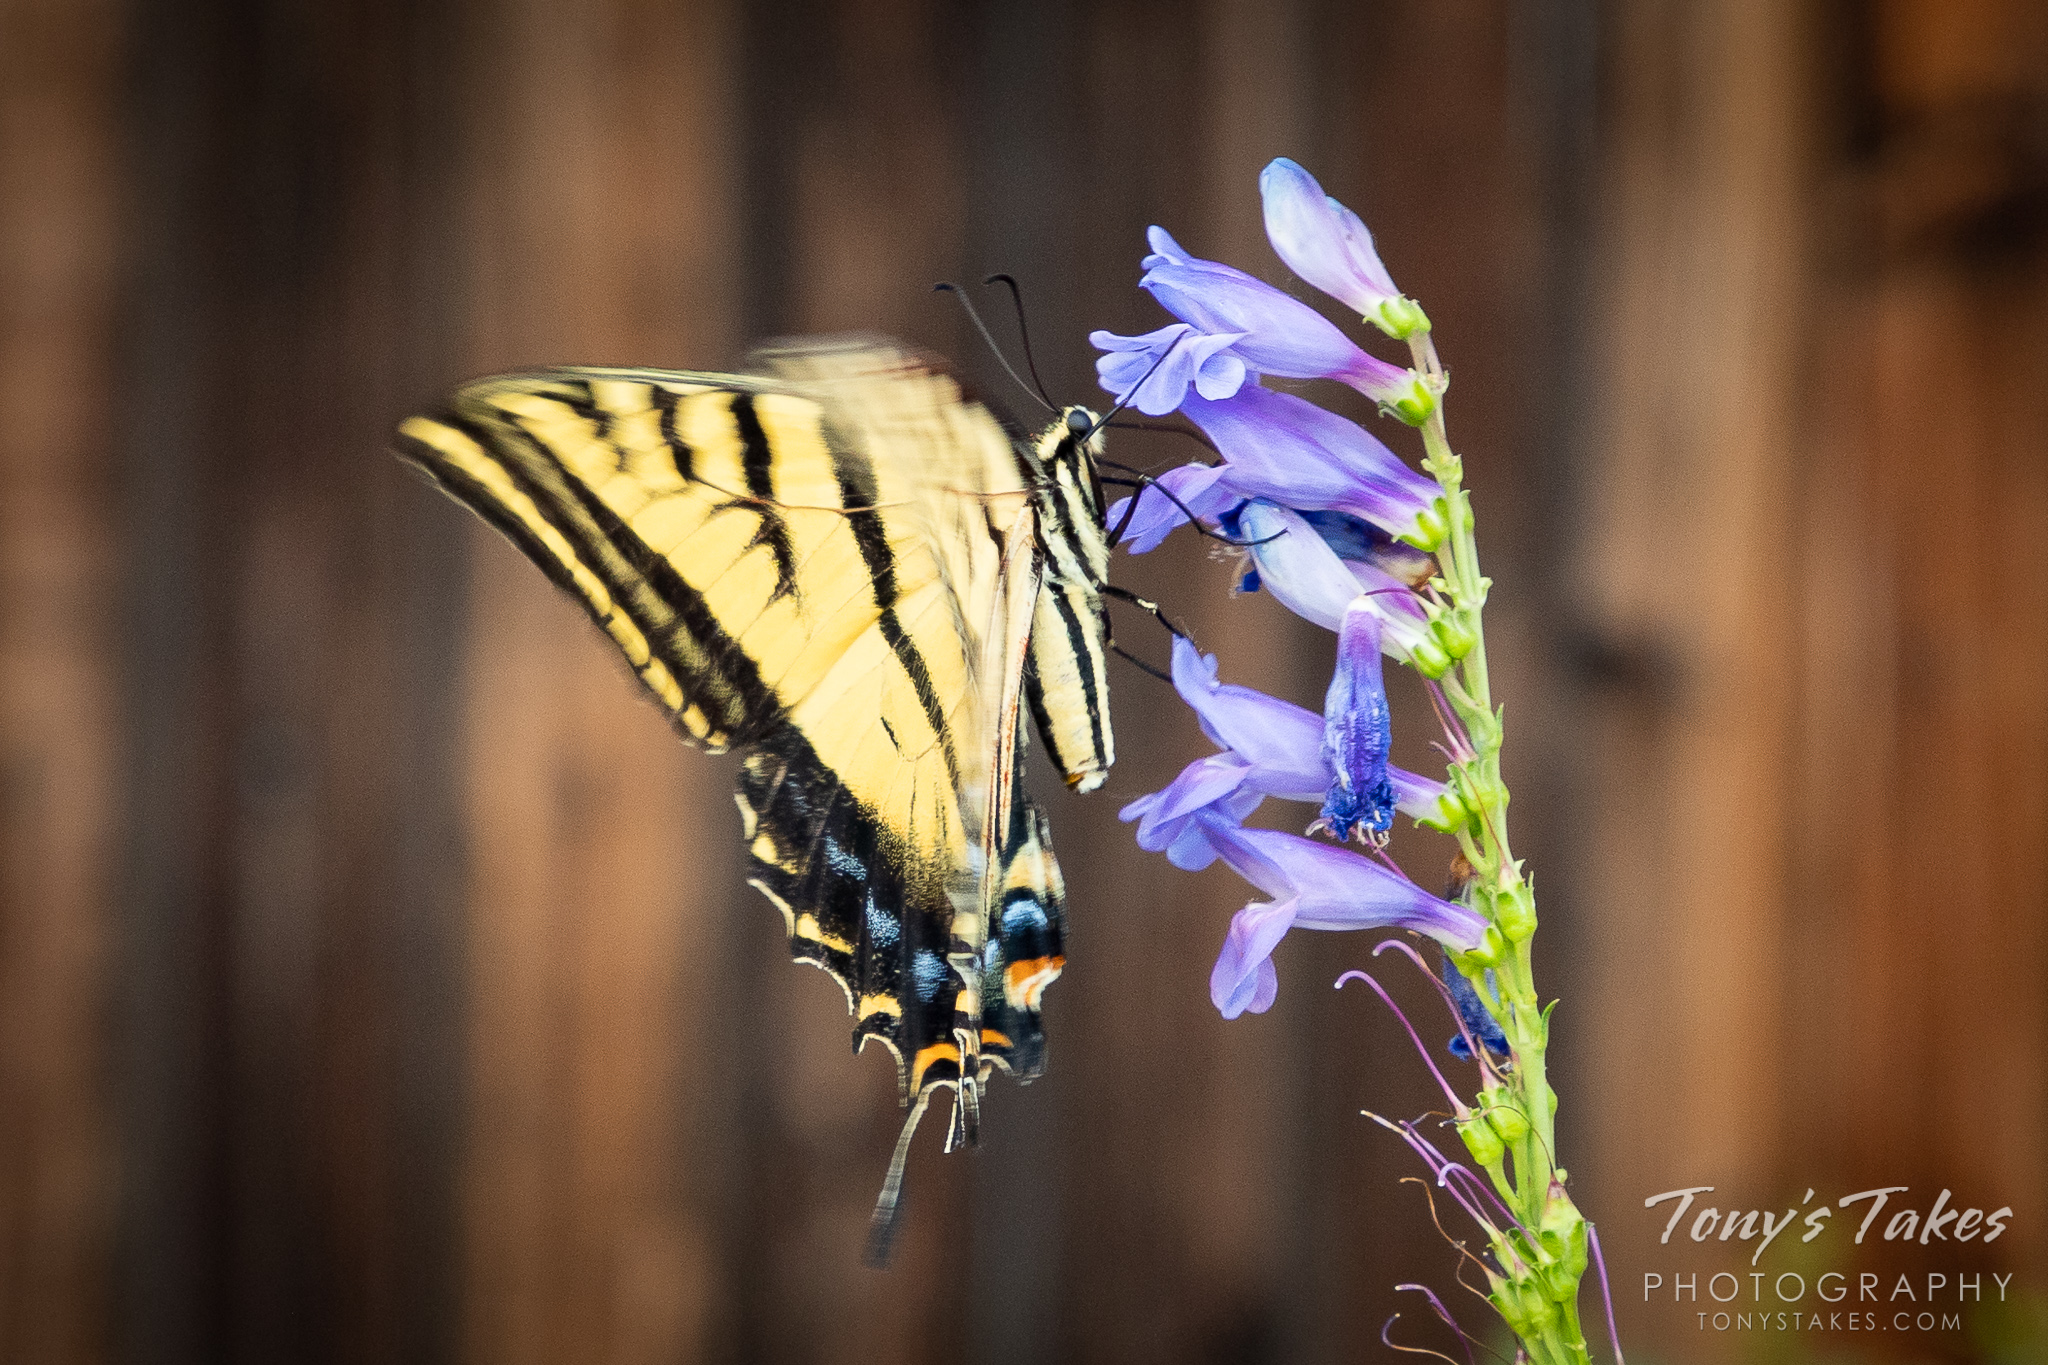 An eastern tiger swallowtail butterfly enjoys a flower in Thornton, Colorado. (© Tony's Takes)